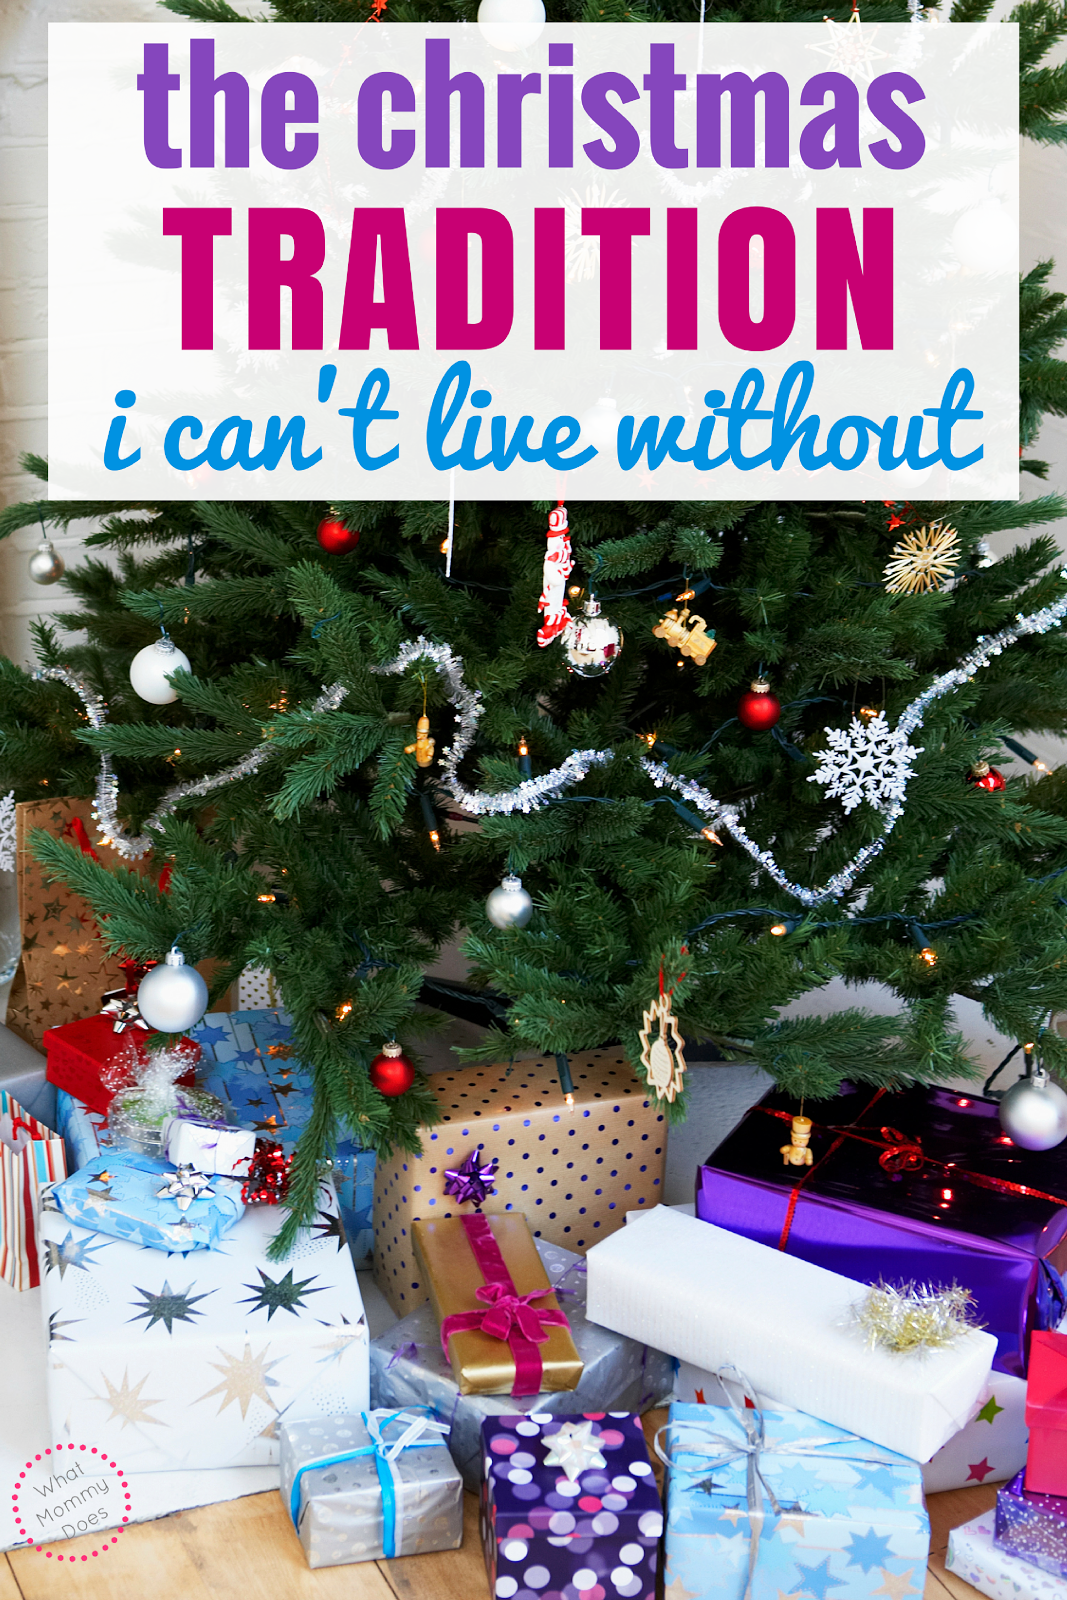 When I think of fun, old fashioned Christmas traditions, this family activitty comes to mind. I take my kids to do this every single year & I did it with my family as a child. I also going use a new idea to keep Christmas Christ centered this year. Here's an example any Christian family could do regardless of your children's ages.